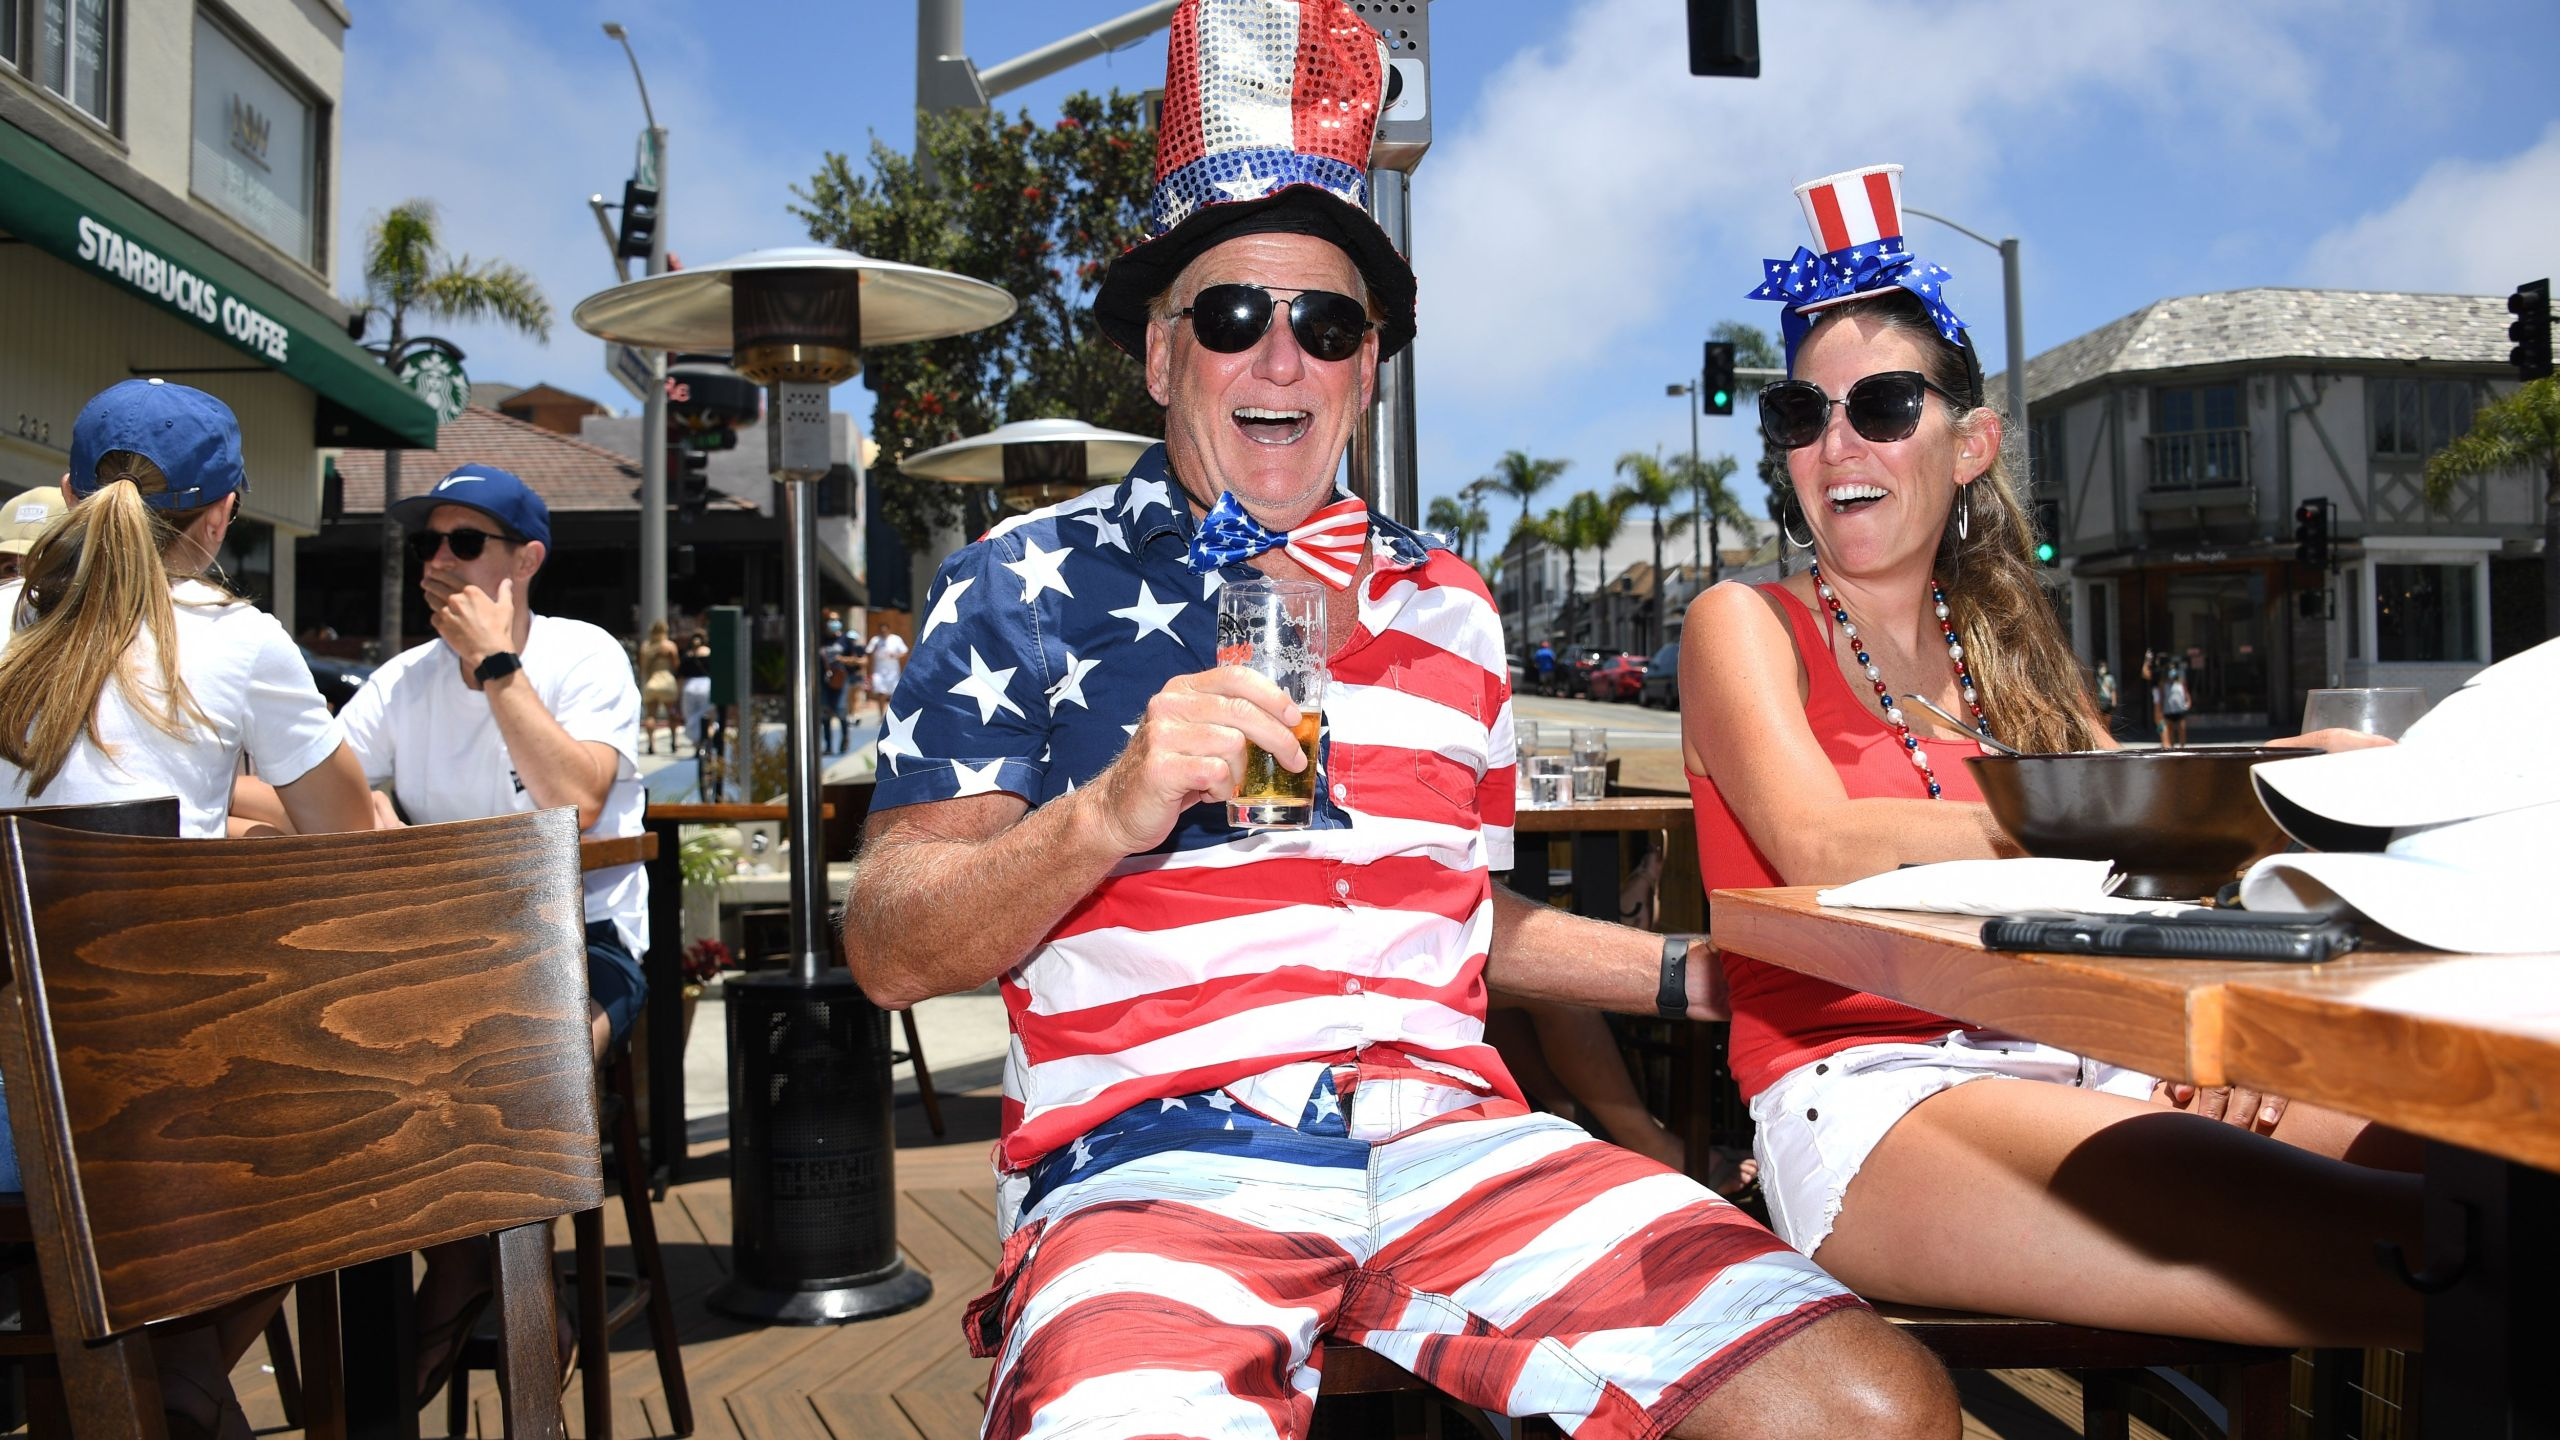 Dave Barnes enjoys a holiday lunch with his wife Christy Barnes at an outdoor restaurant in Manhattan Beach, California where beaches are closed due to a spike in COVID-19 in Los Angeles County, on July 4, 2020, the U.S. Independence Day holiday. (ROBYN BECK/AFP via Getty Images)